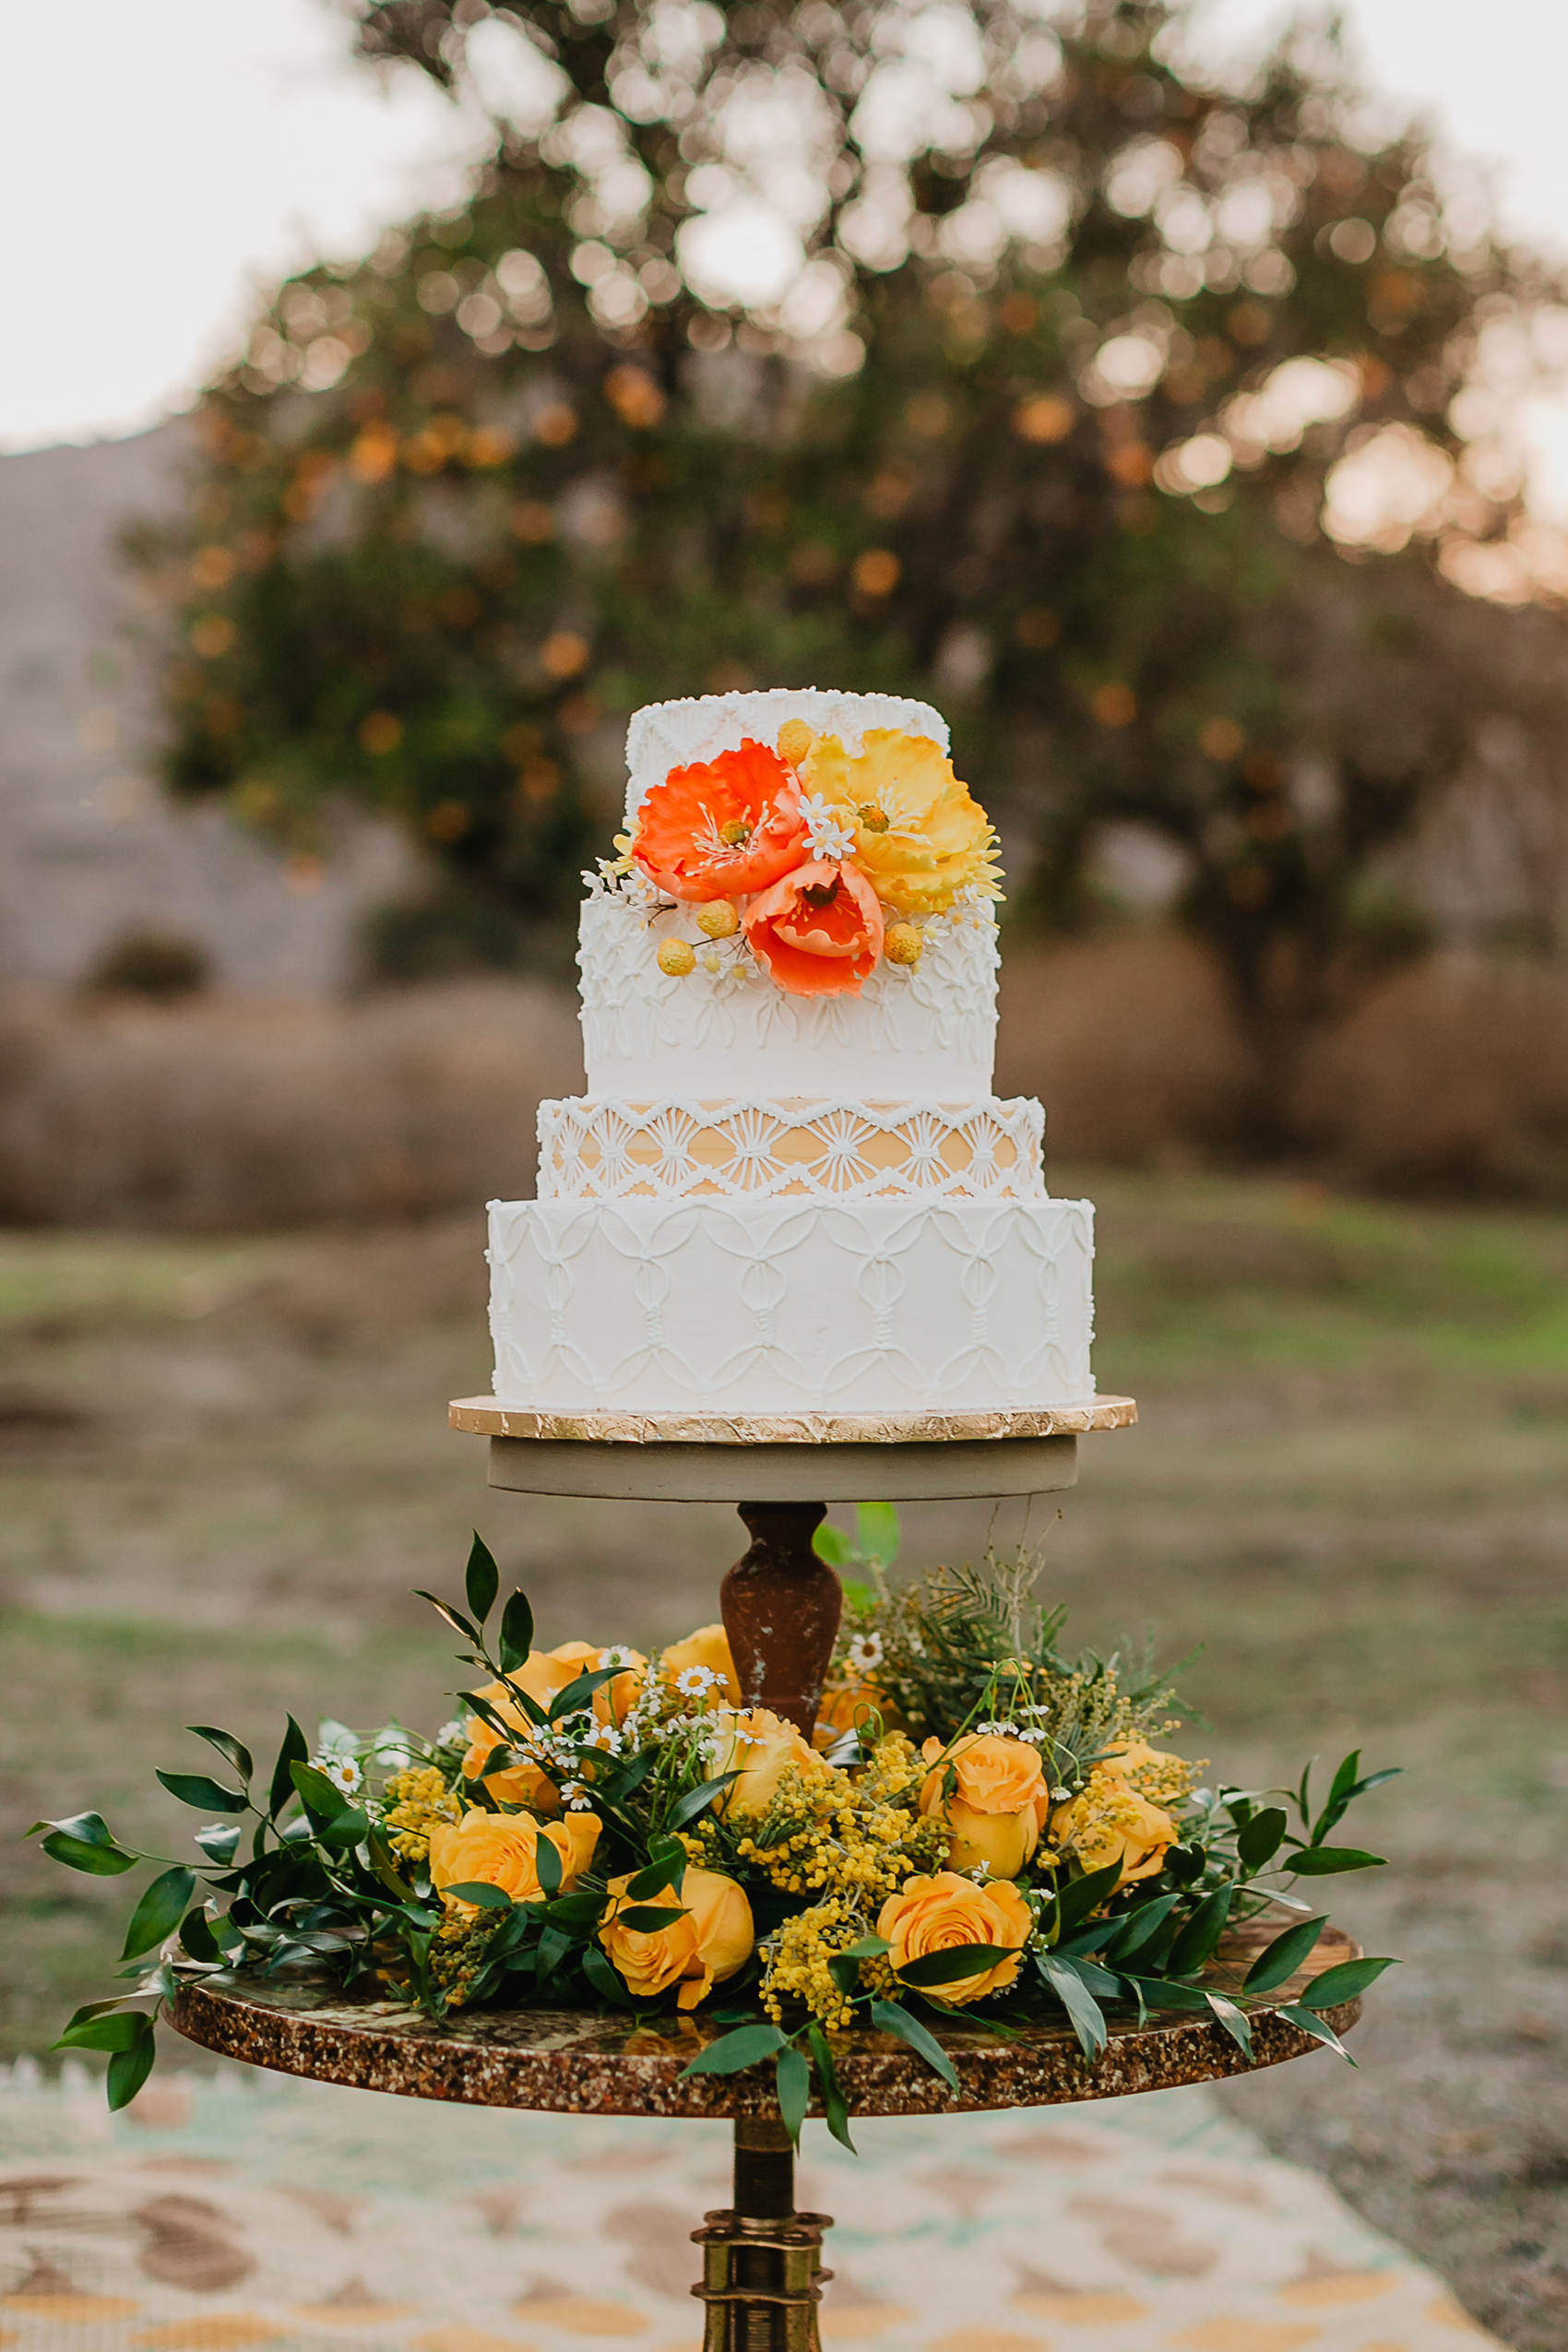 micro tier wedding cakes accent tier orange and white